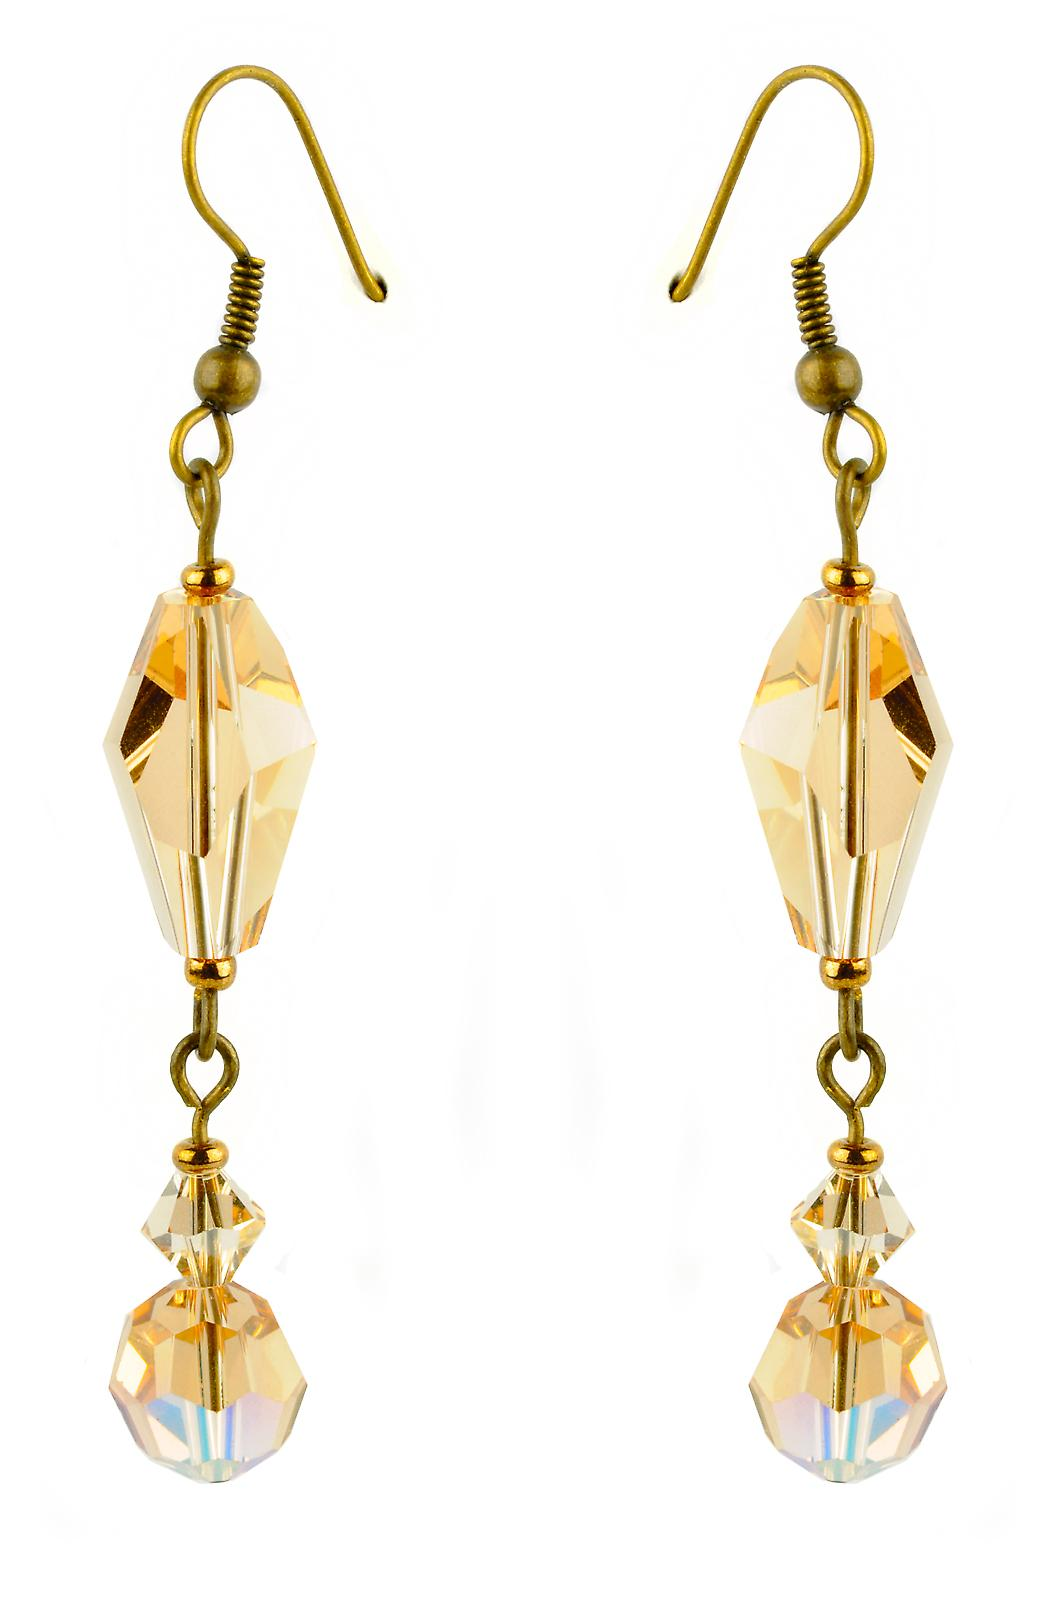 Waooh - Fashion Jewellery - WJ0728 - On Earrings with Swarovski Yellow & White - Frame Colour Gold